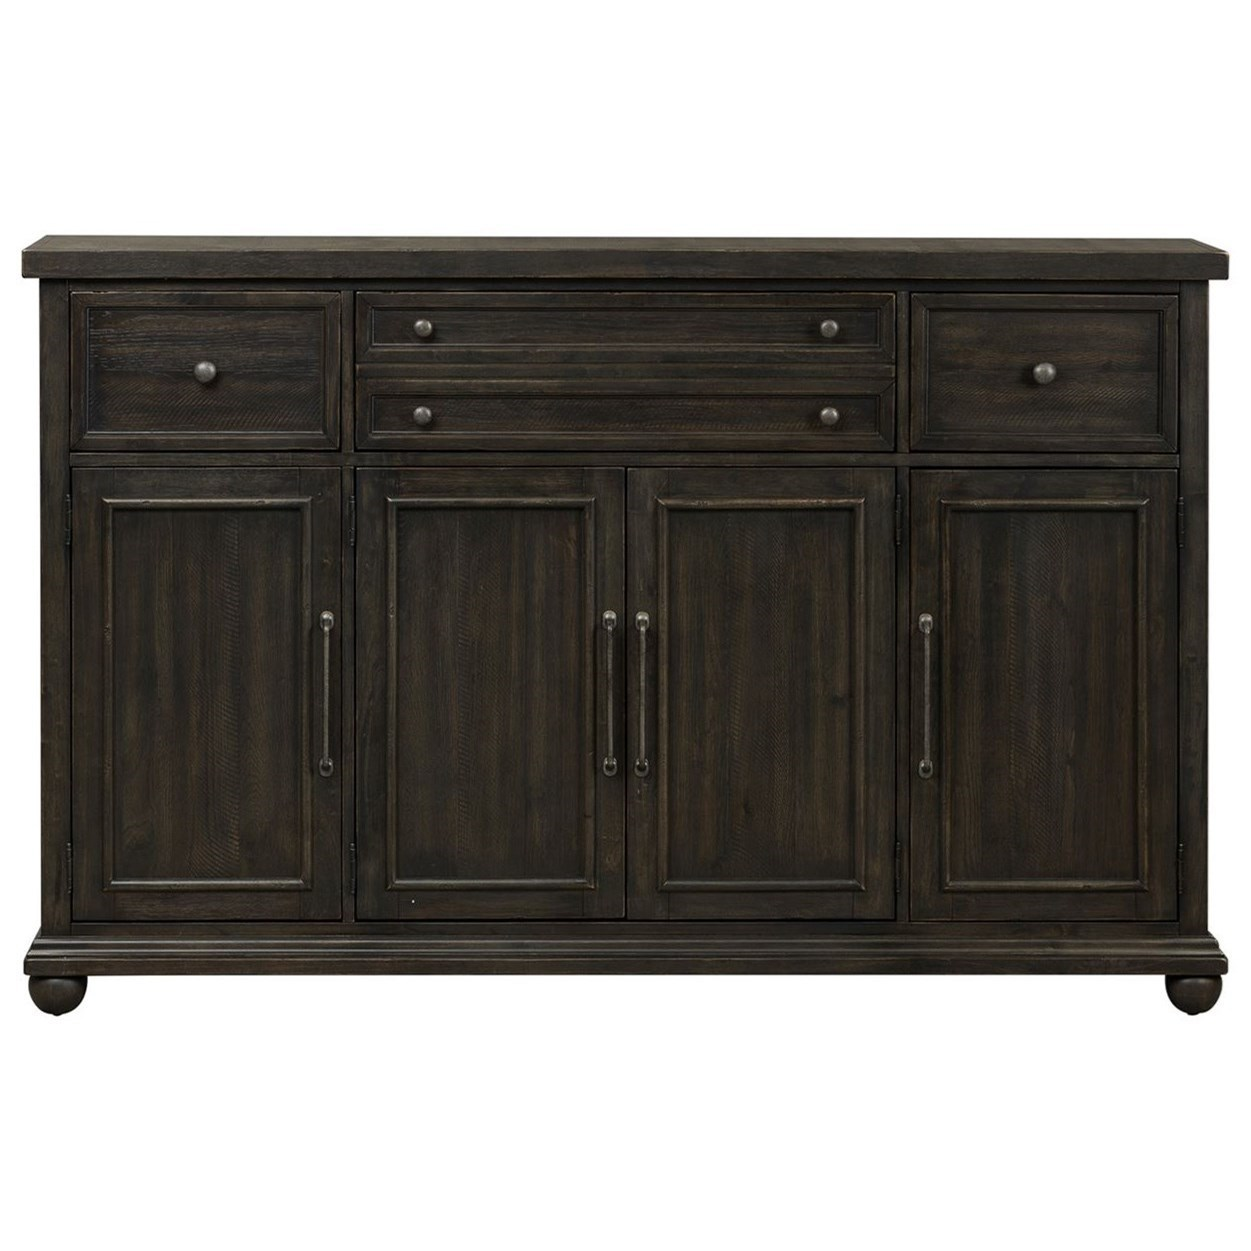 Relaxed Vintage Hall Buffet with Metal Hardware